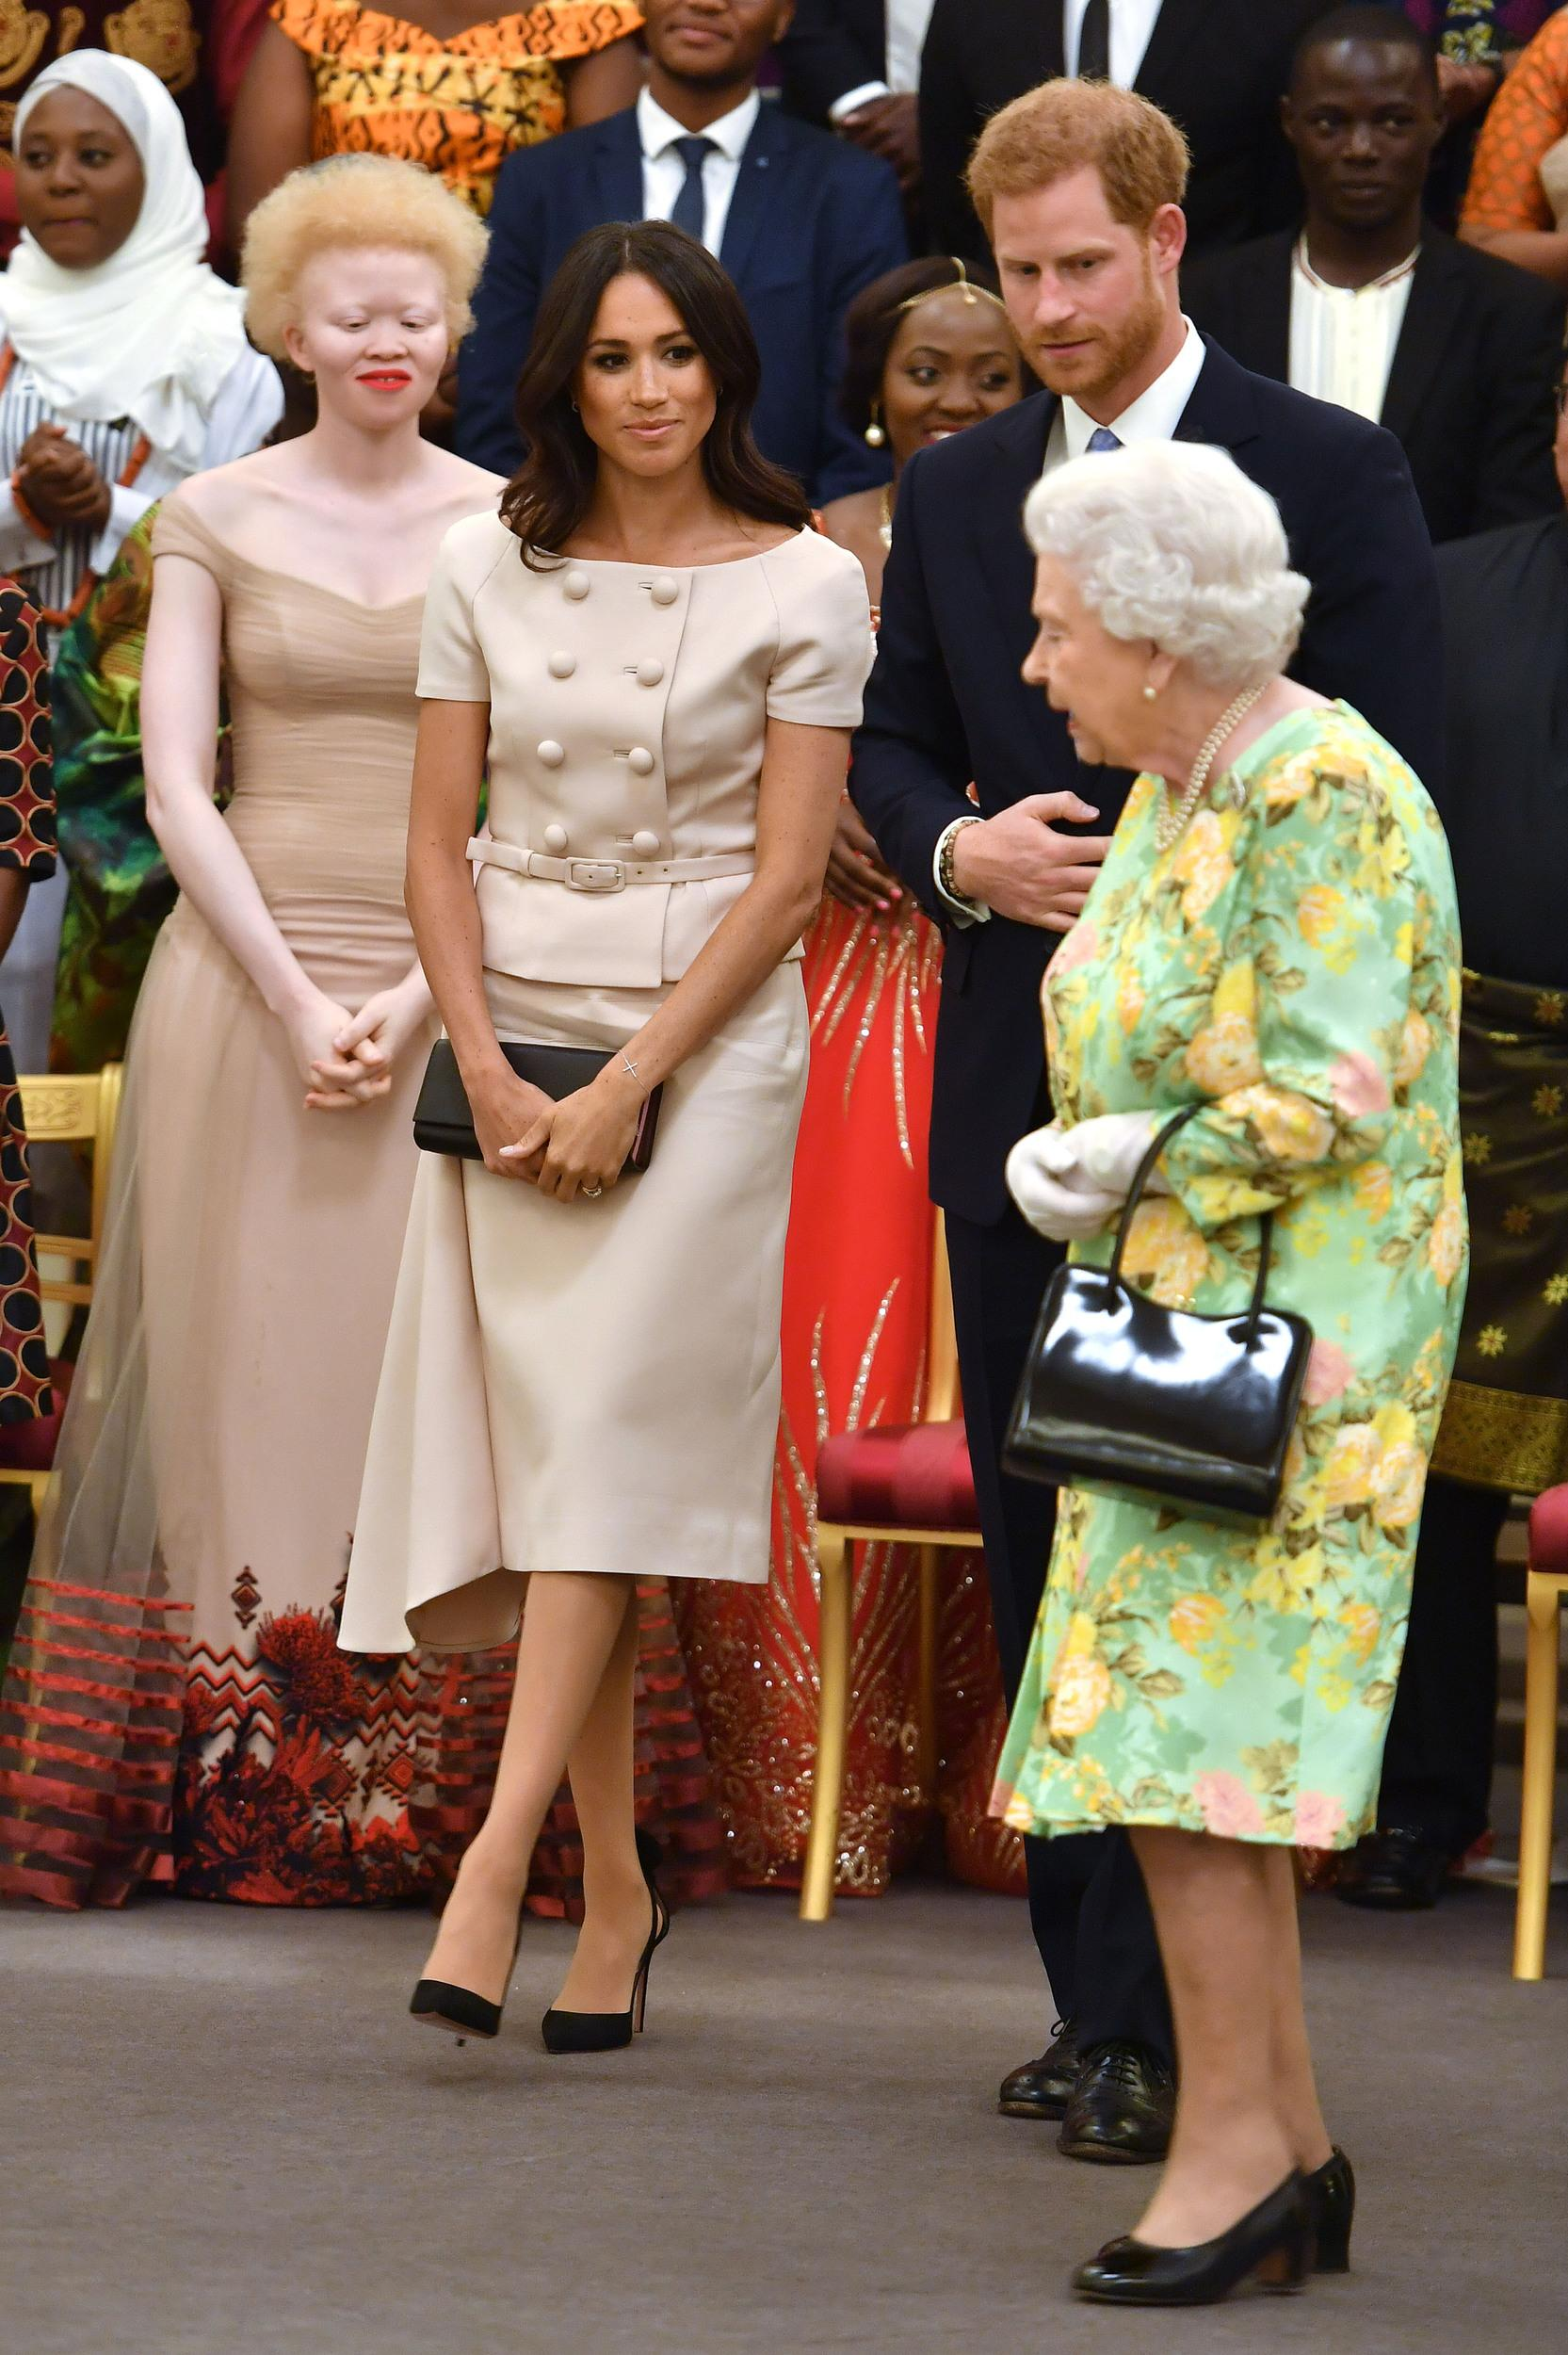 LONDON, ENGLAND - JUNE 26: Meghan, Duchess of Sussex with Queen Elizabeth II and Prince Harry, Duke of Sussex at the Queen's Young Leaders Awards Ceremony at Buckingham Palace on June 26, 2018 in London, England. The Queen's Young Leaders Programme, now in its fourth and final year, celebrates the achievements of young people from across the Commonwealth working to improve the lives of people across a diverse range of issues including supporting people living with mental health problems, access to education, promoting gender equality, food scarcity and climate change.  (Photo by John Stillwell - WPA Pool/Getty Images)